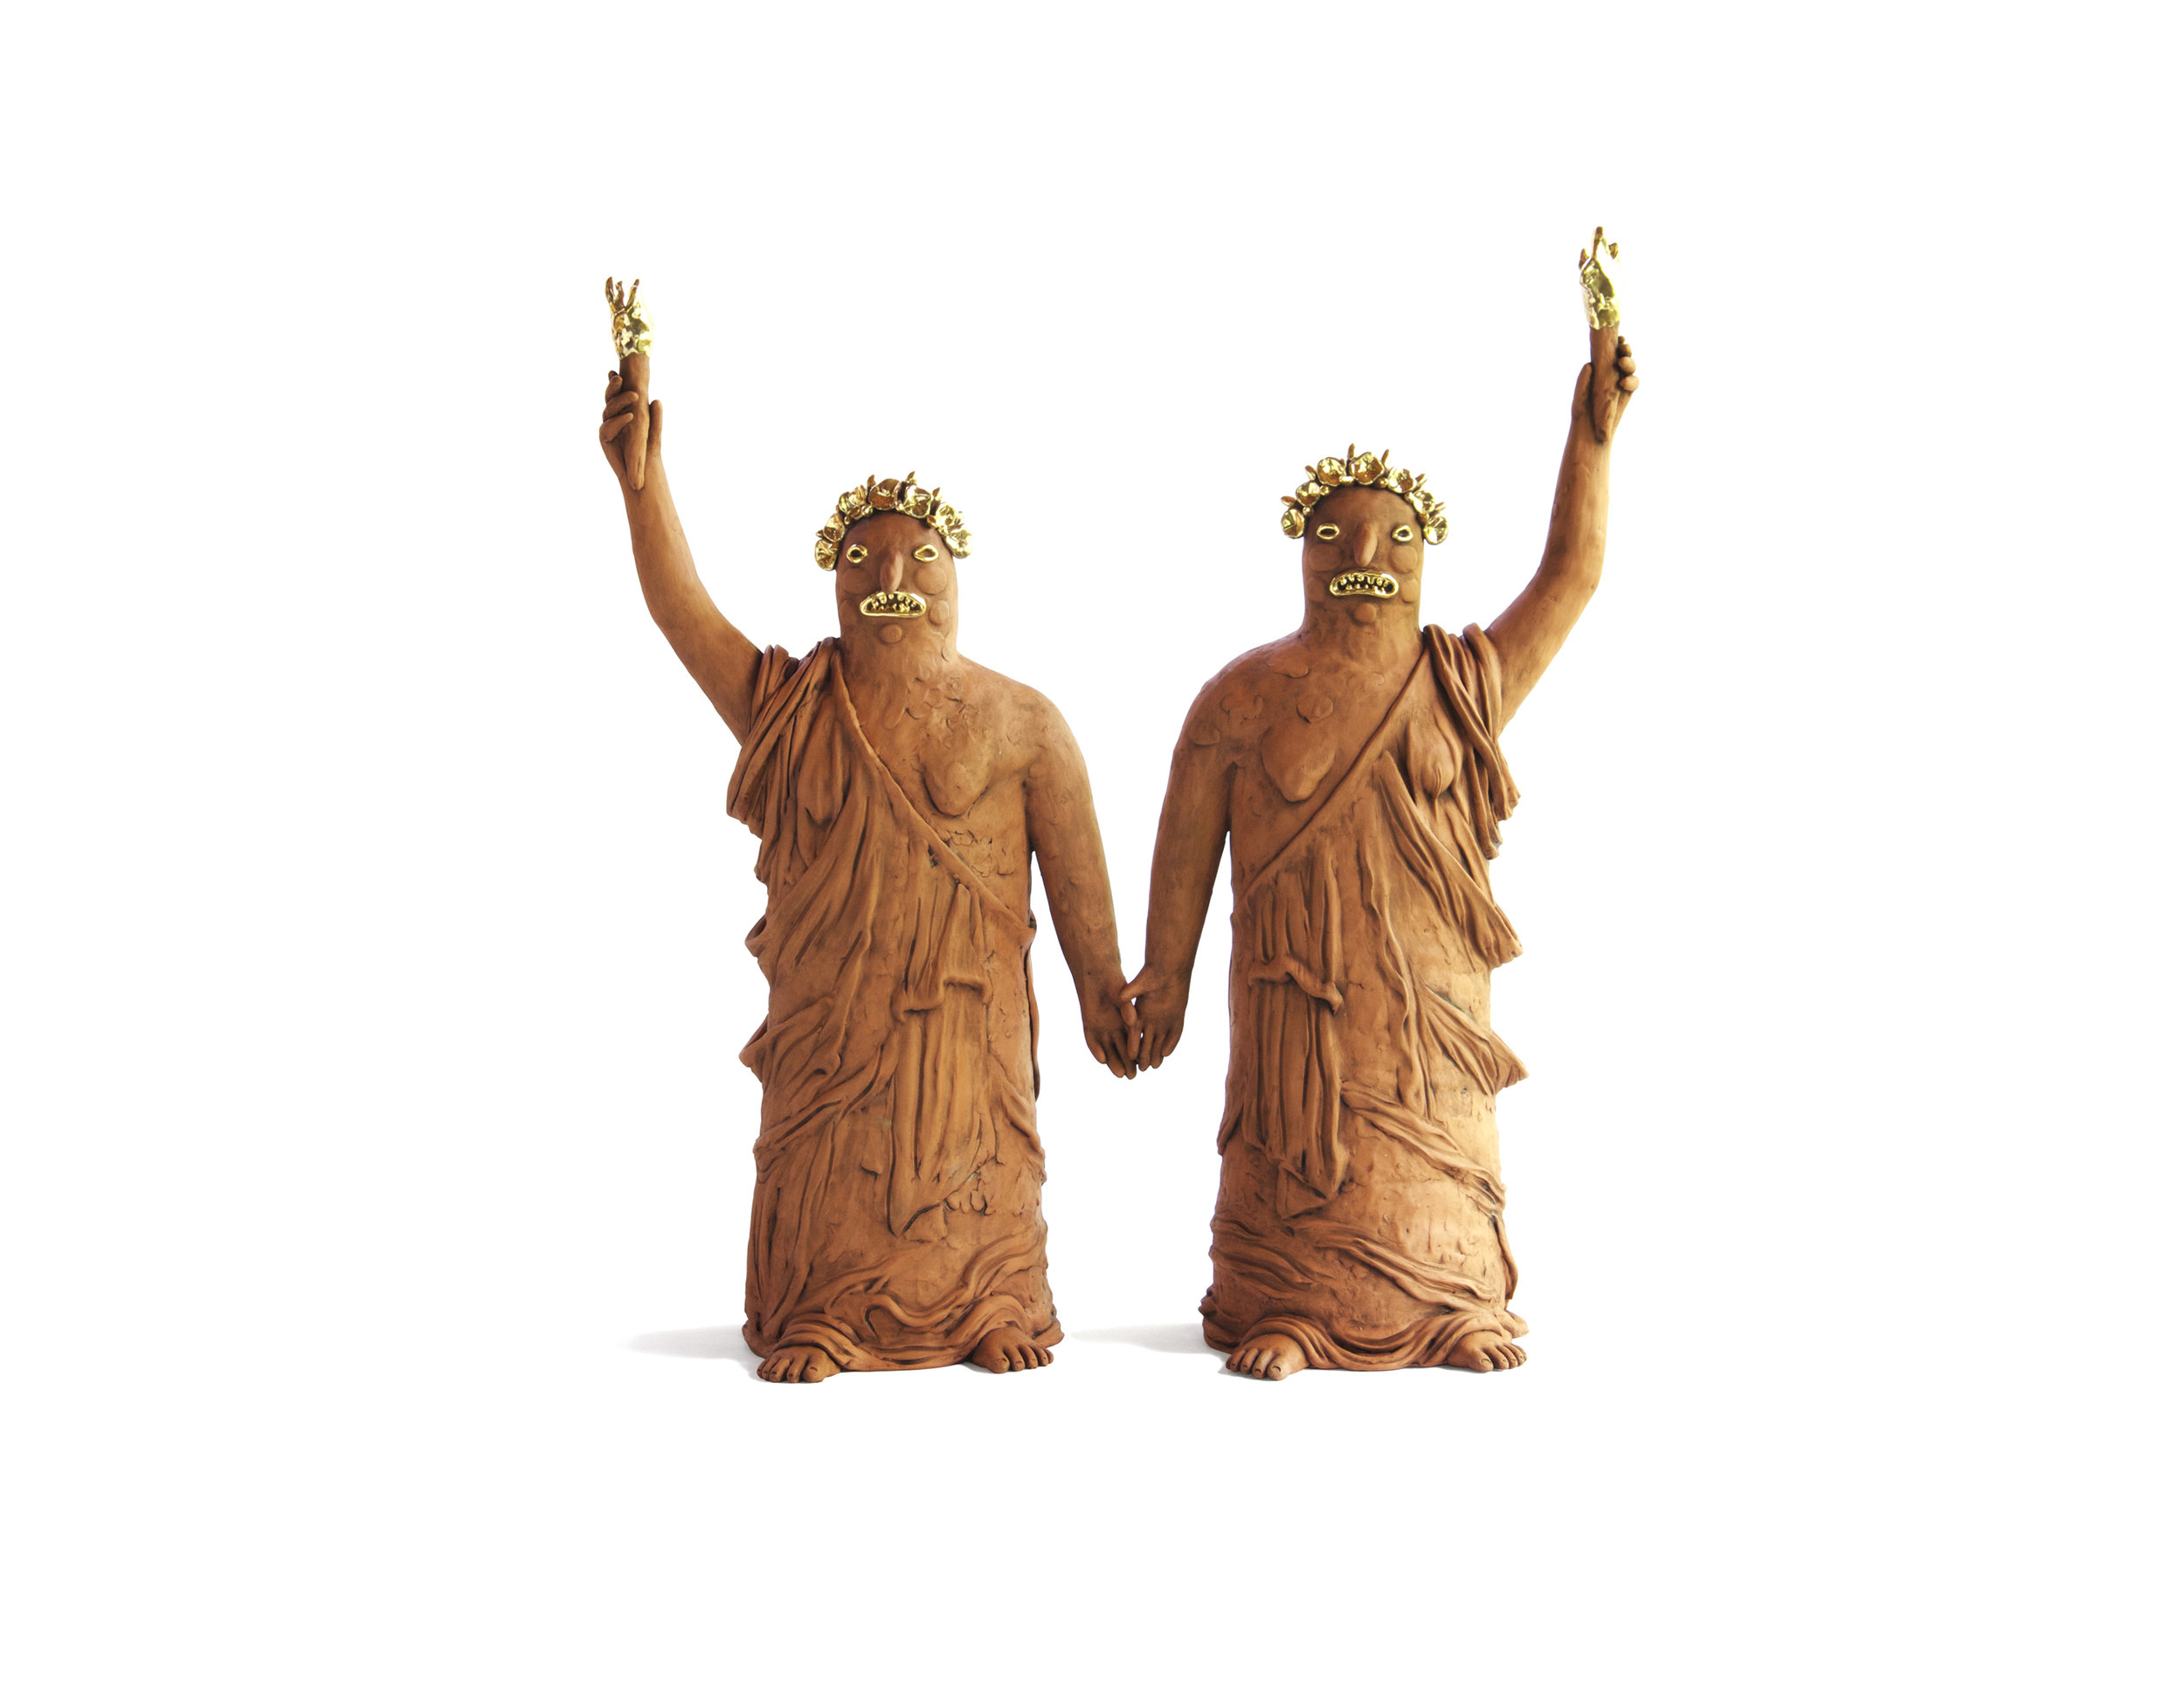 Libertas , 2018. Terracotta and Gold Luster, 23 x 2 x 7 inches